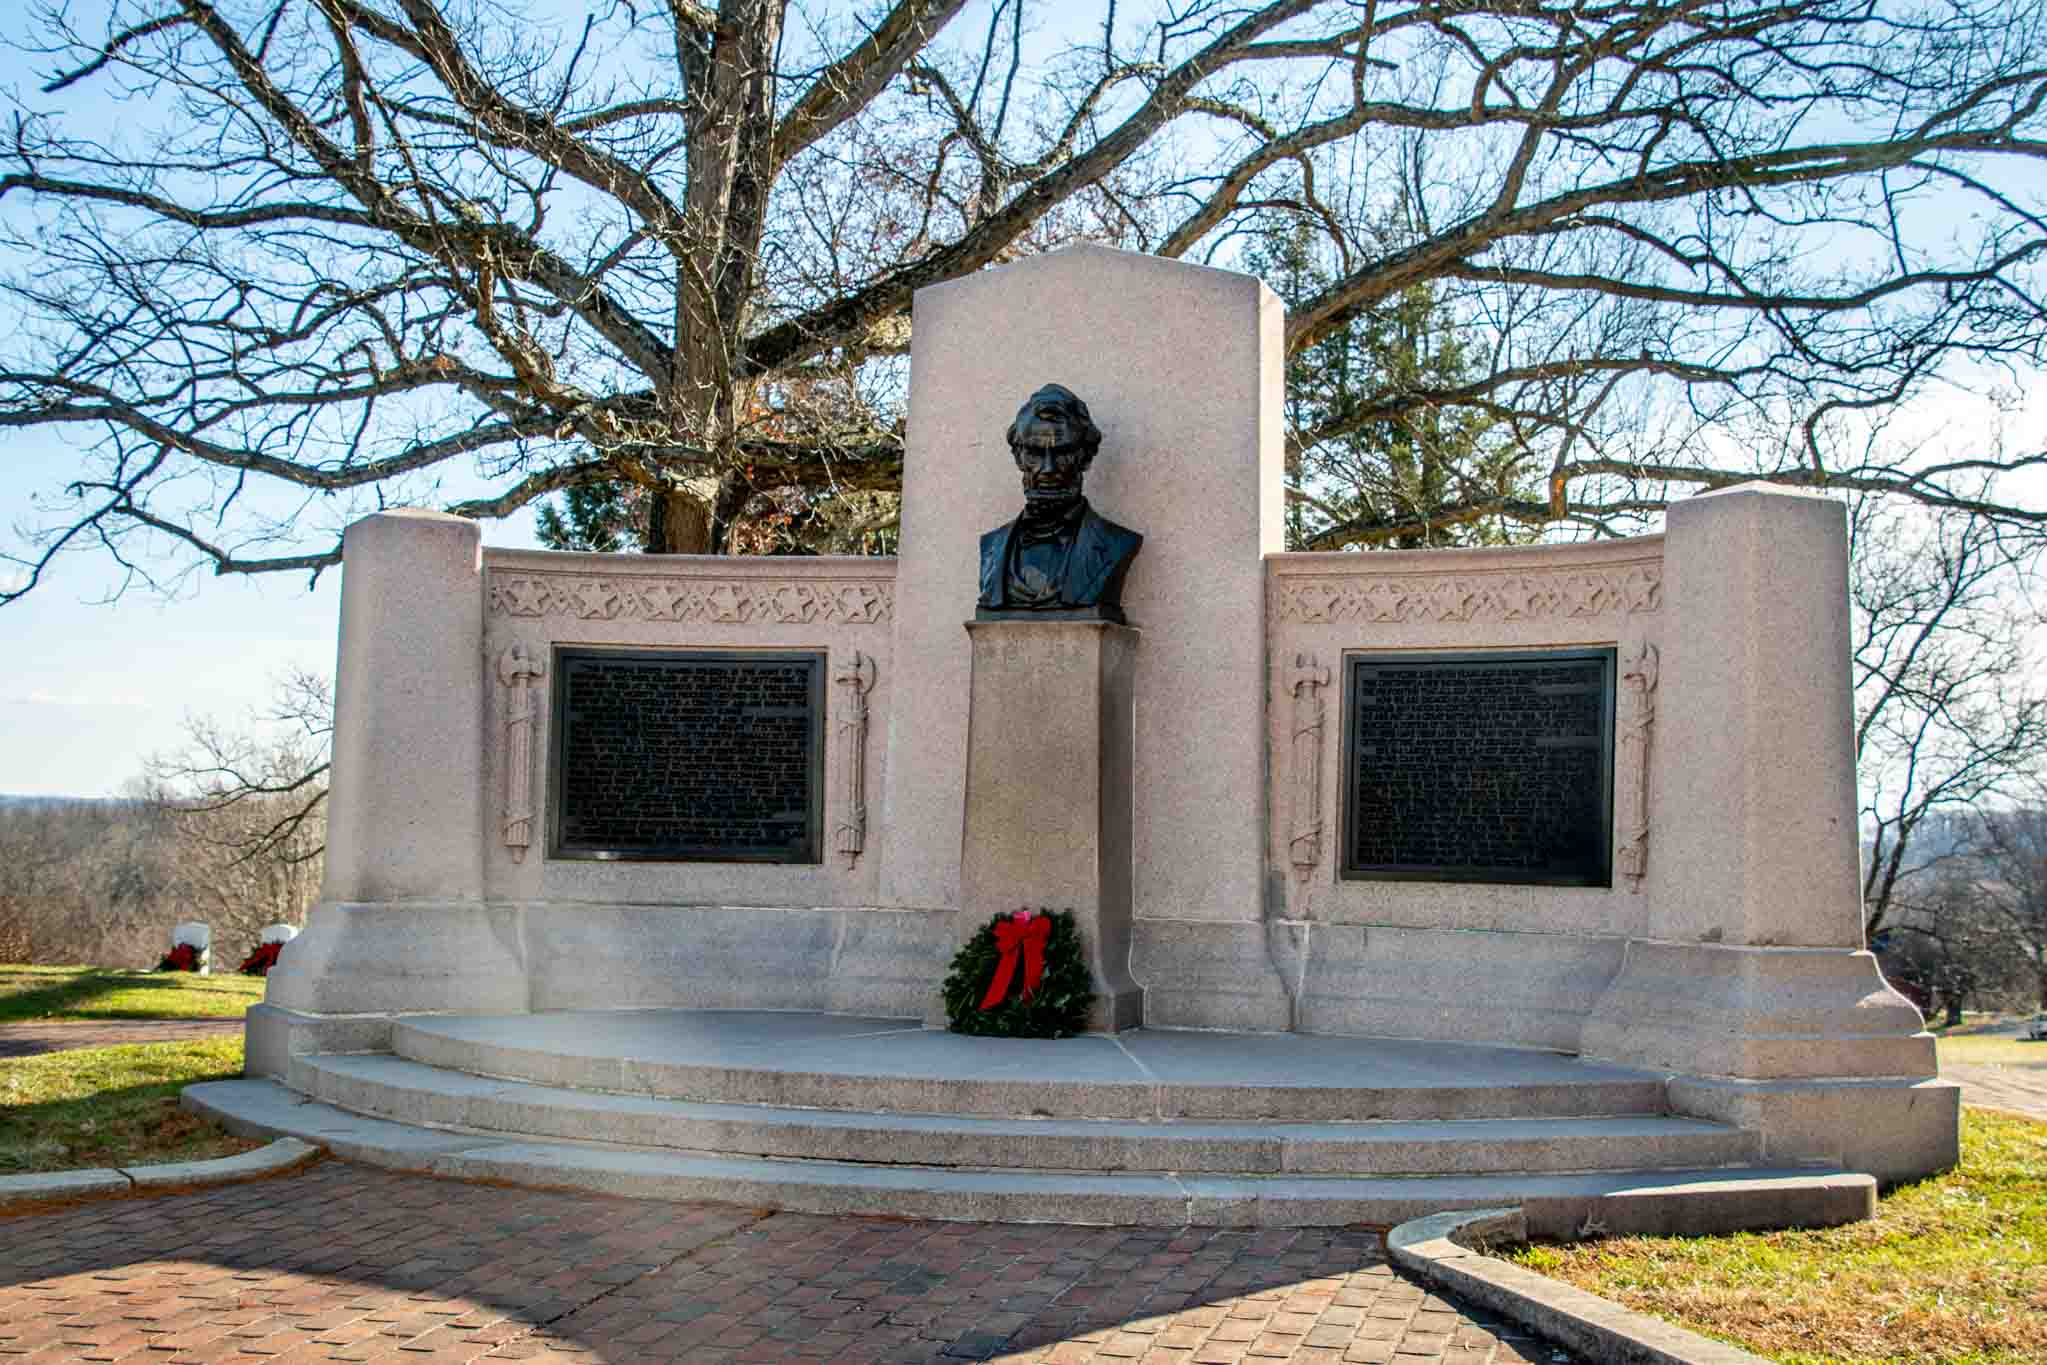 Stone memorial with bust of Abraham Lincoln at site of the Gettysburg Address